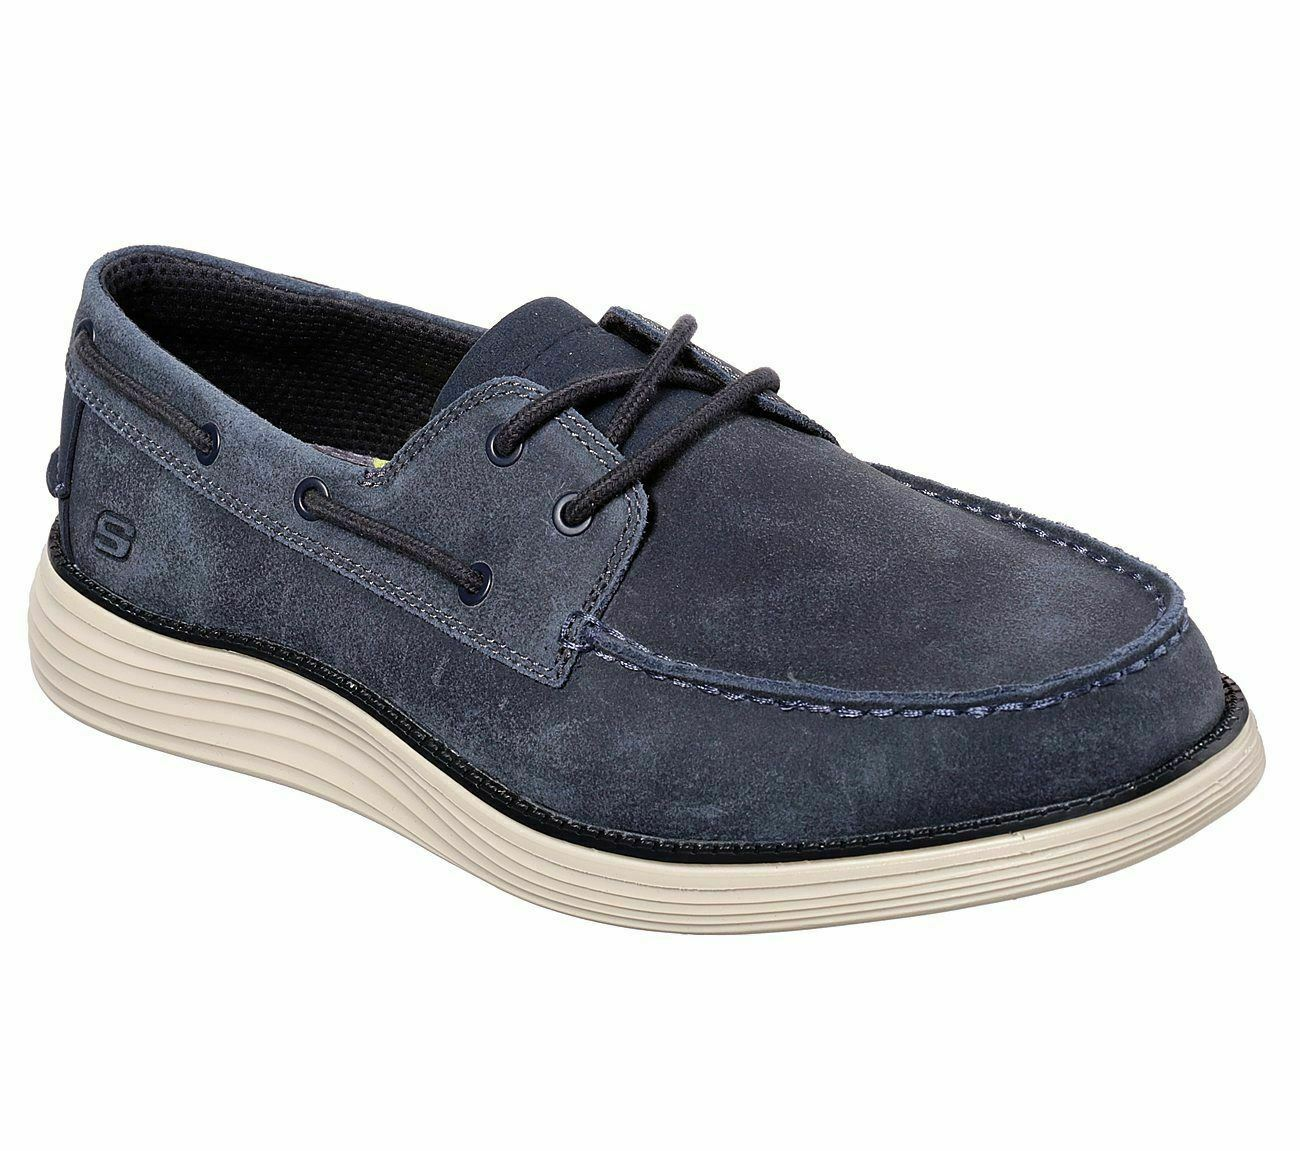 Skechers 65894 NVY Navy Mens Casual Comfort Boat schuhe